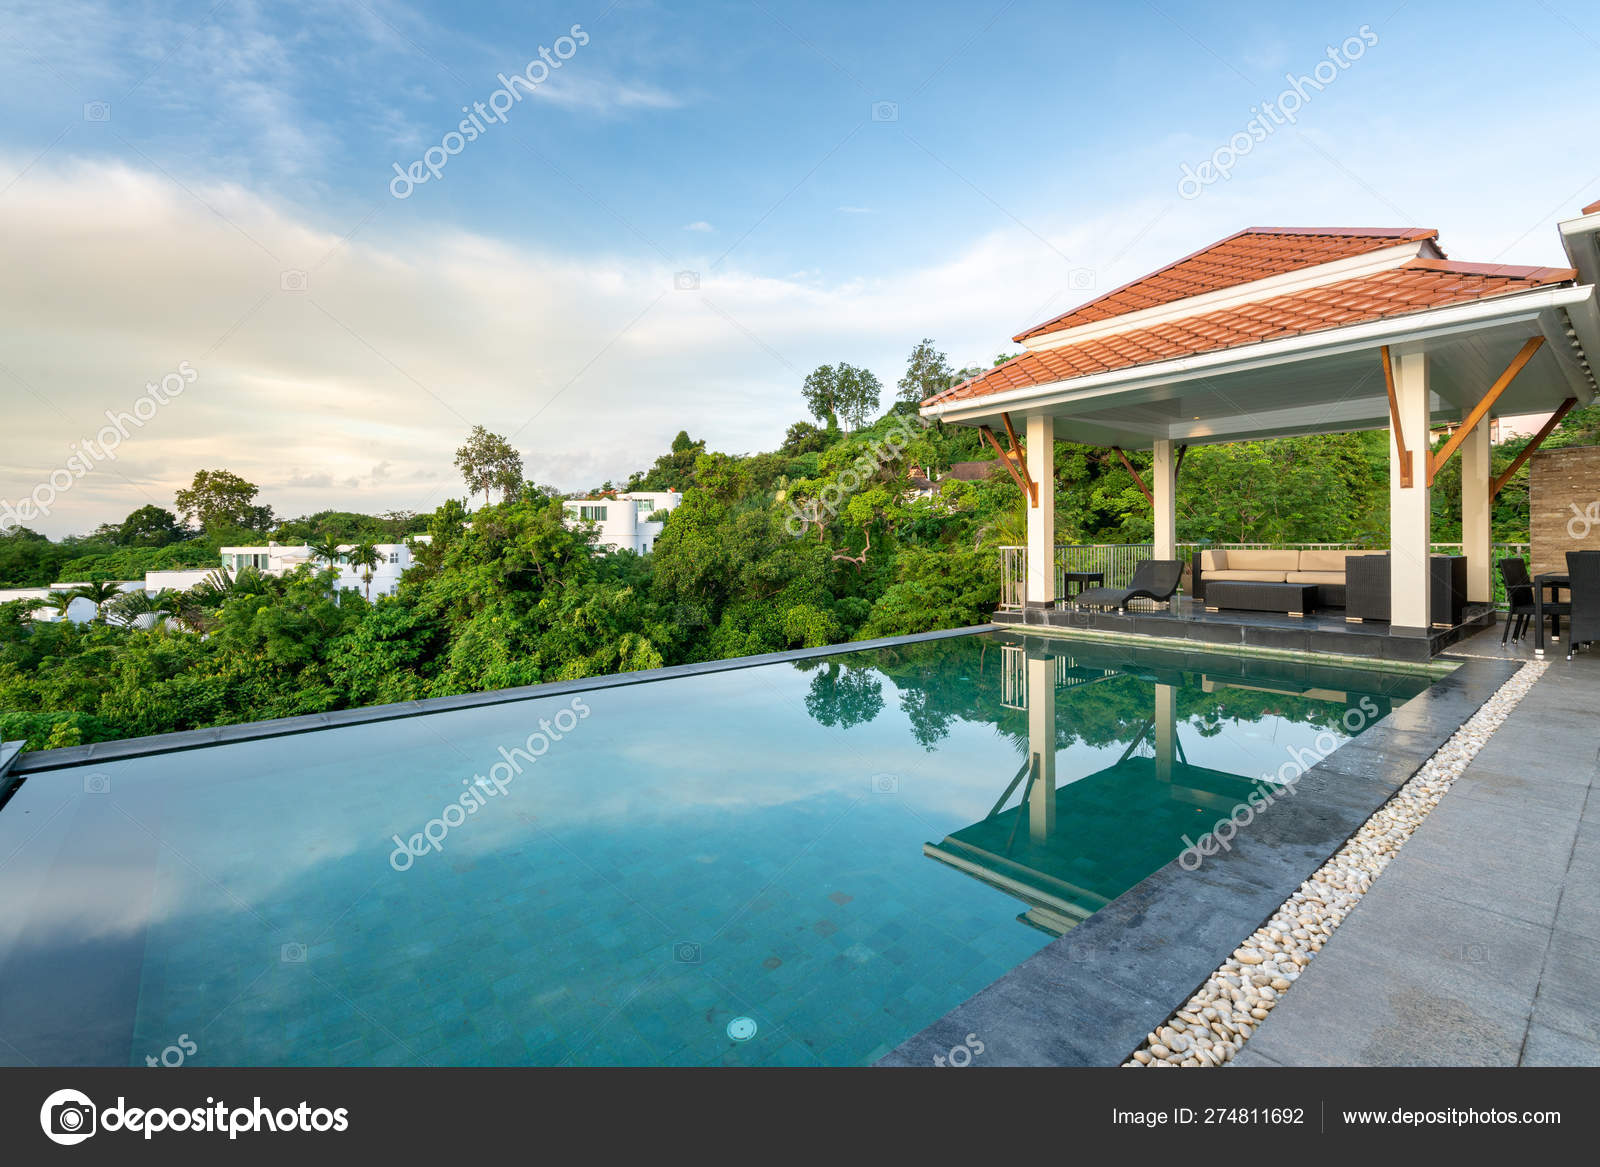 Home exterior design pavilion of pool villa — Stock Photo ... on natural style homes, natural design homes, natural outdoor homes, natural wood homes, natural modern house, natural landscape homes, natural building homes,